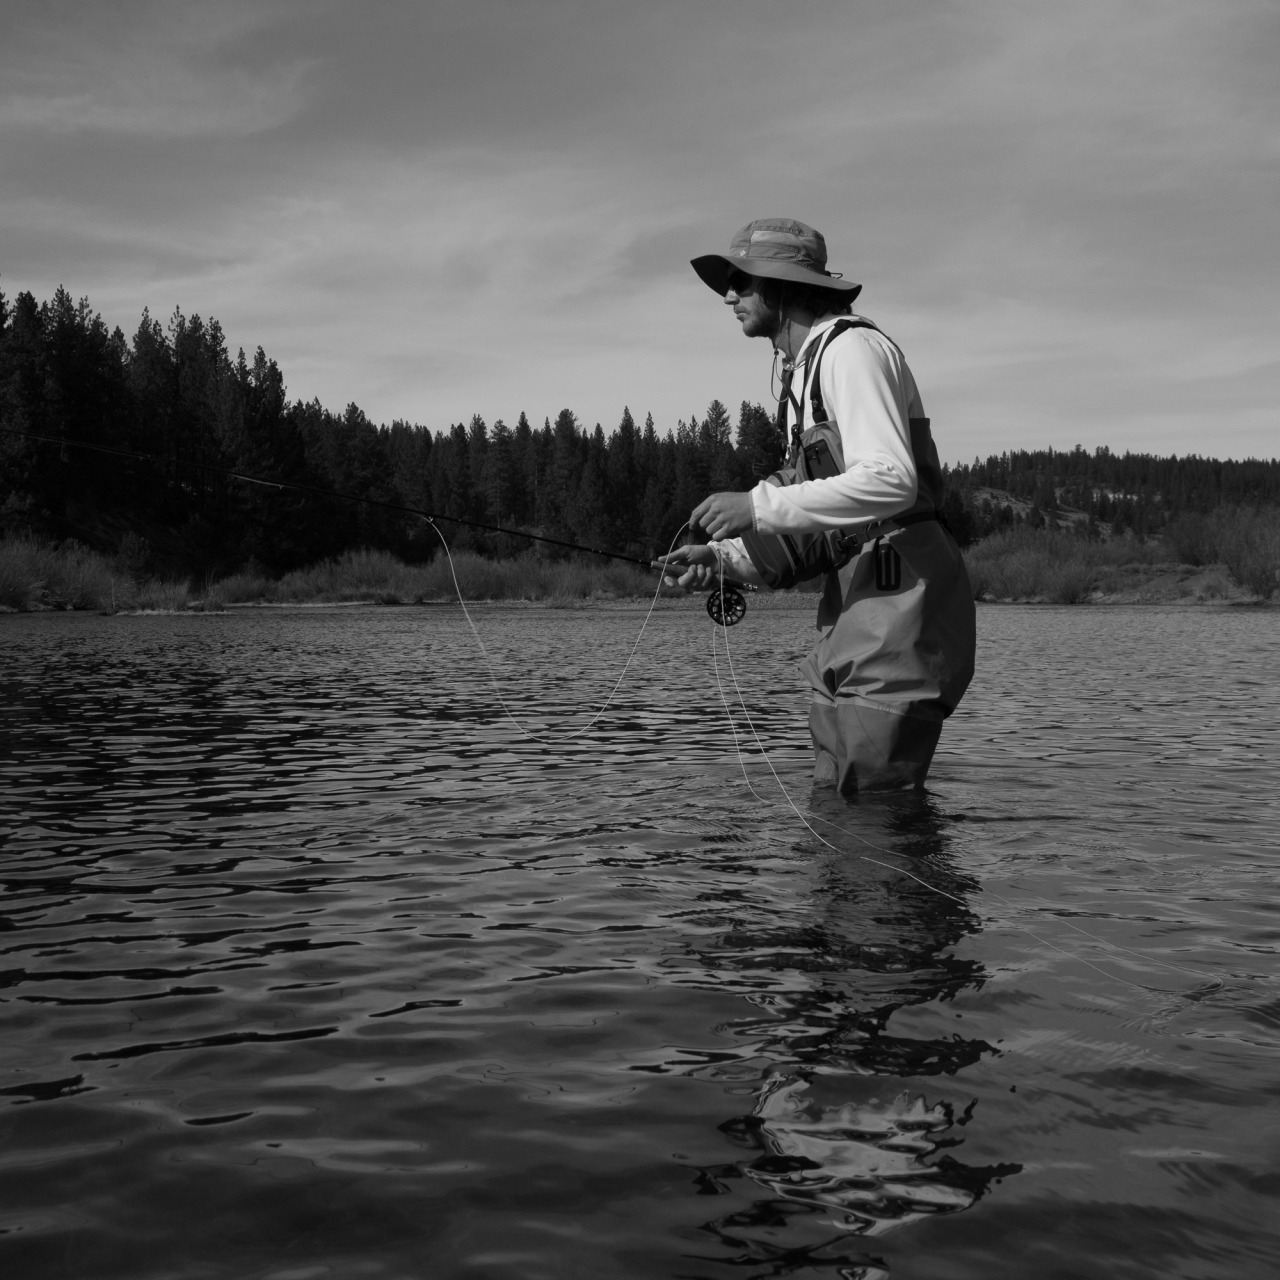 Jeff casts his fly rod in the Truckee river and waits for a bite